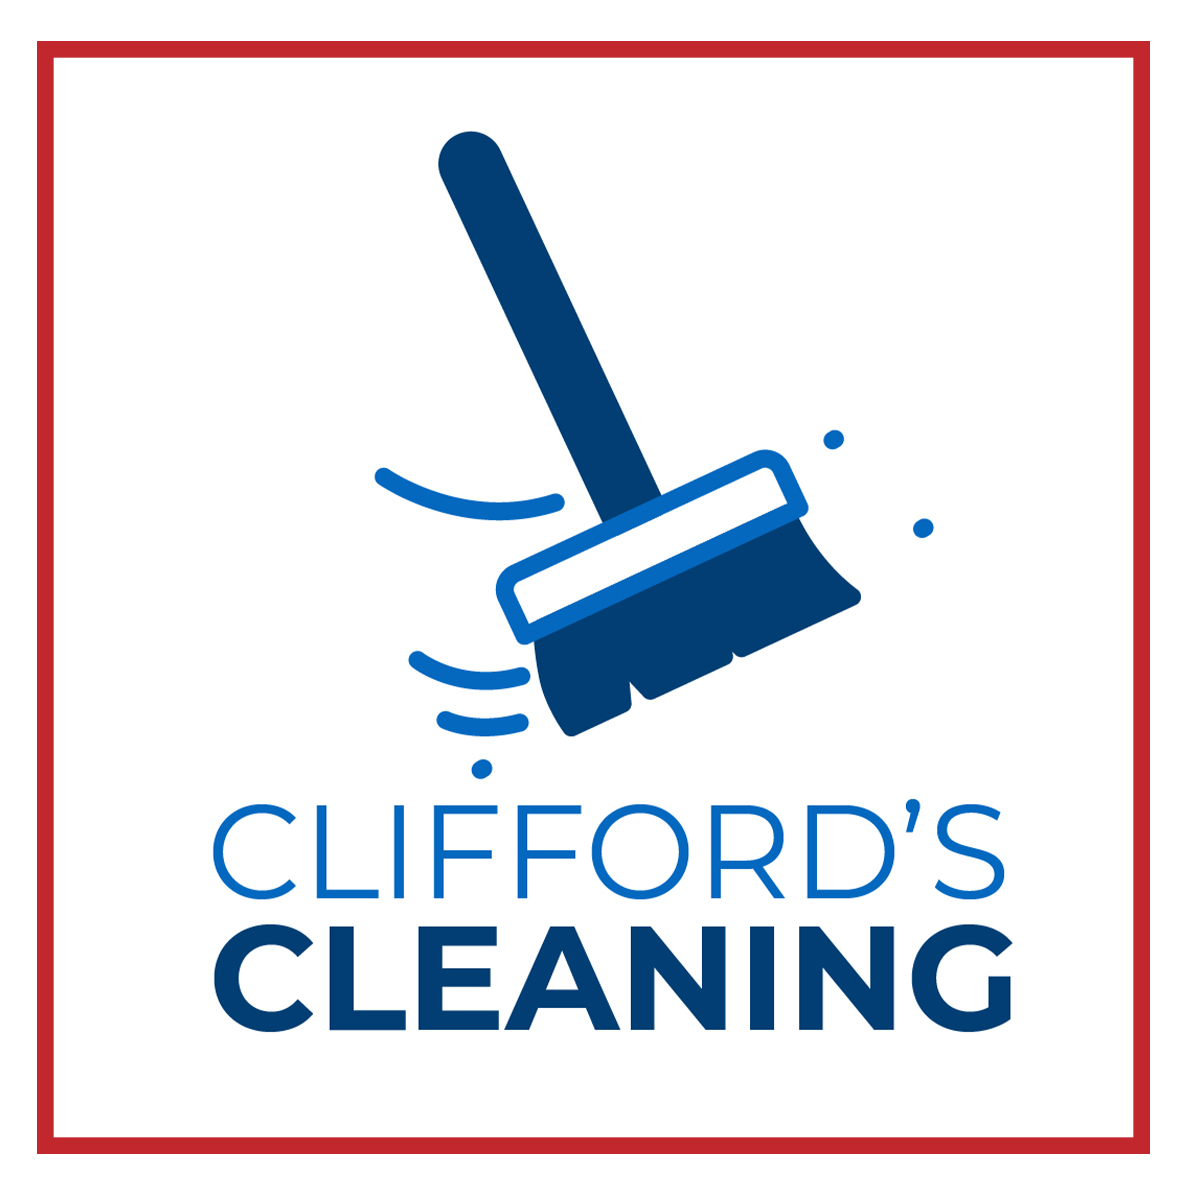 Clifford's Cleaning